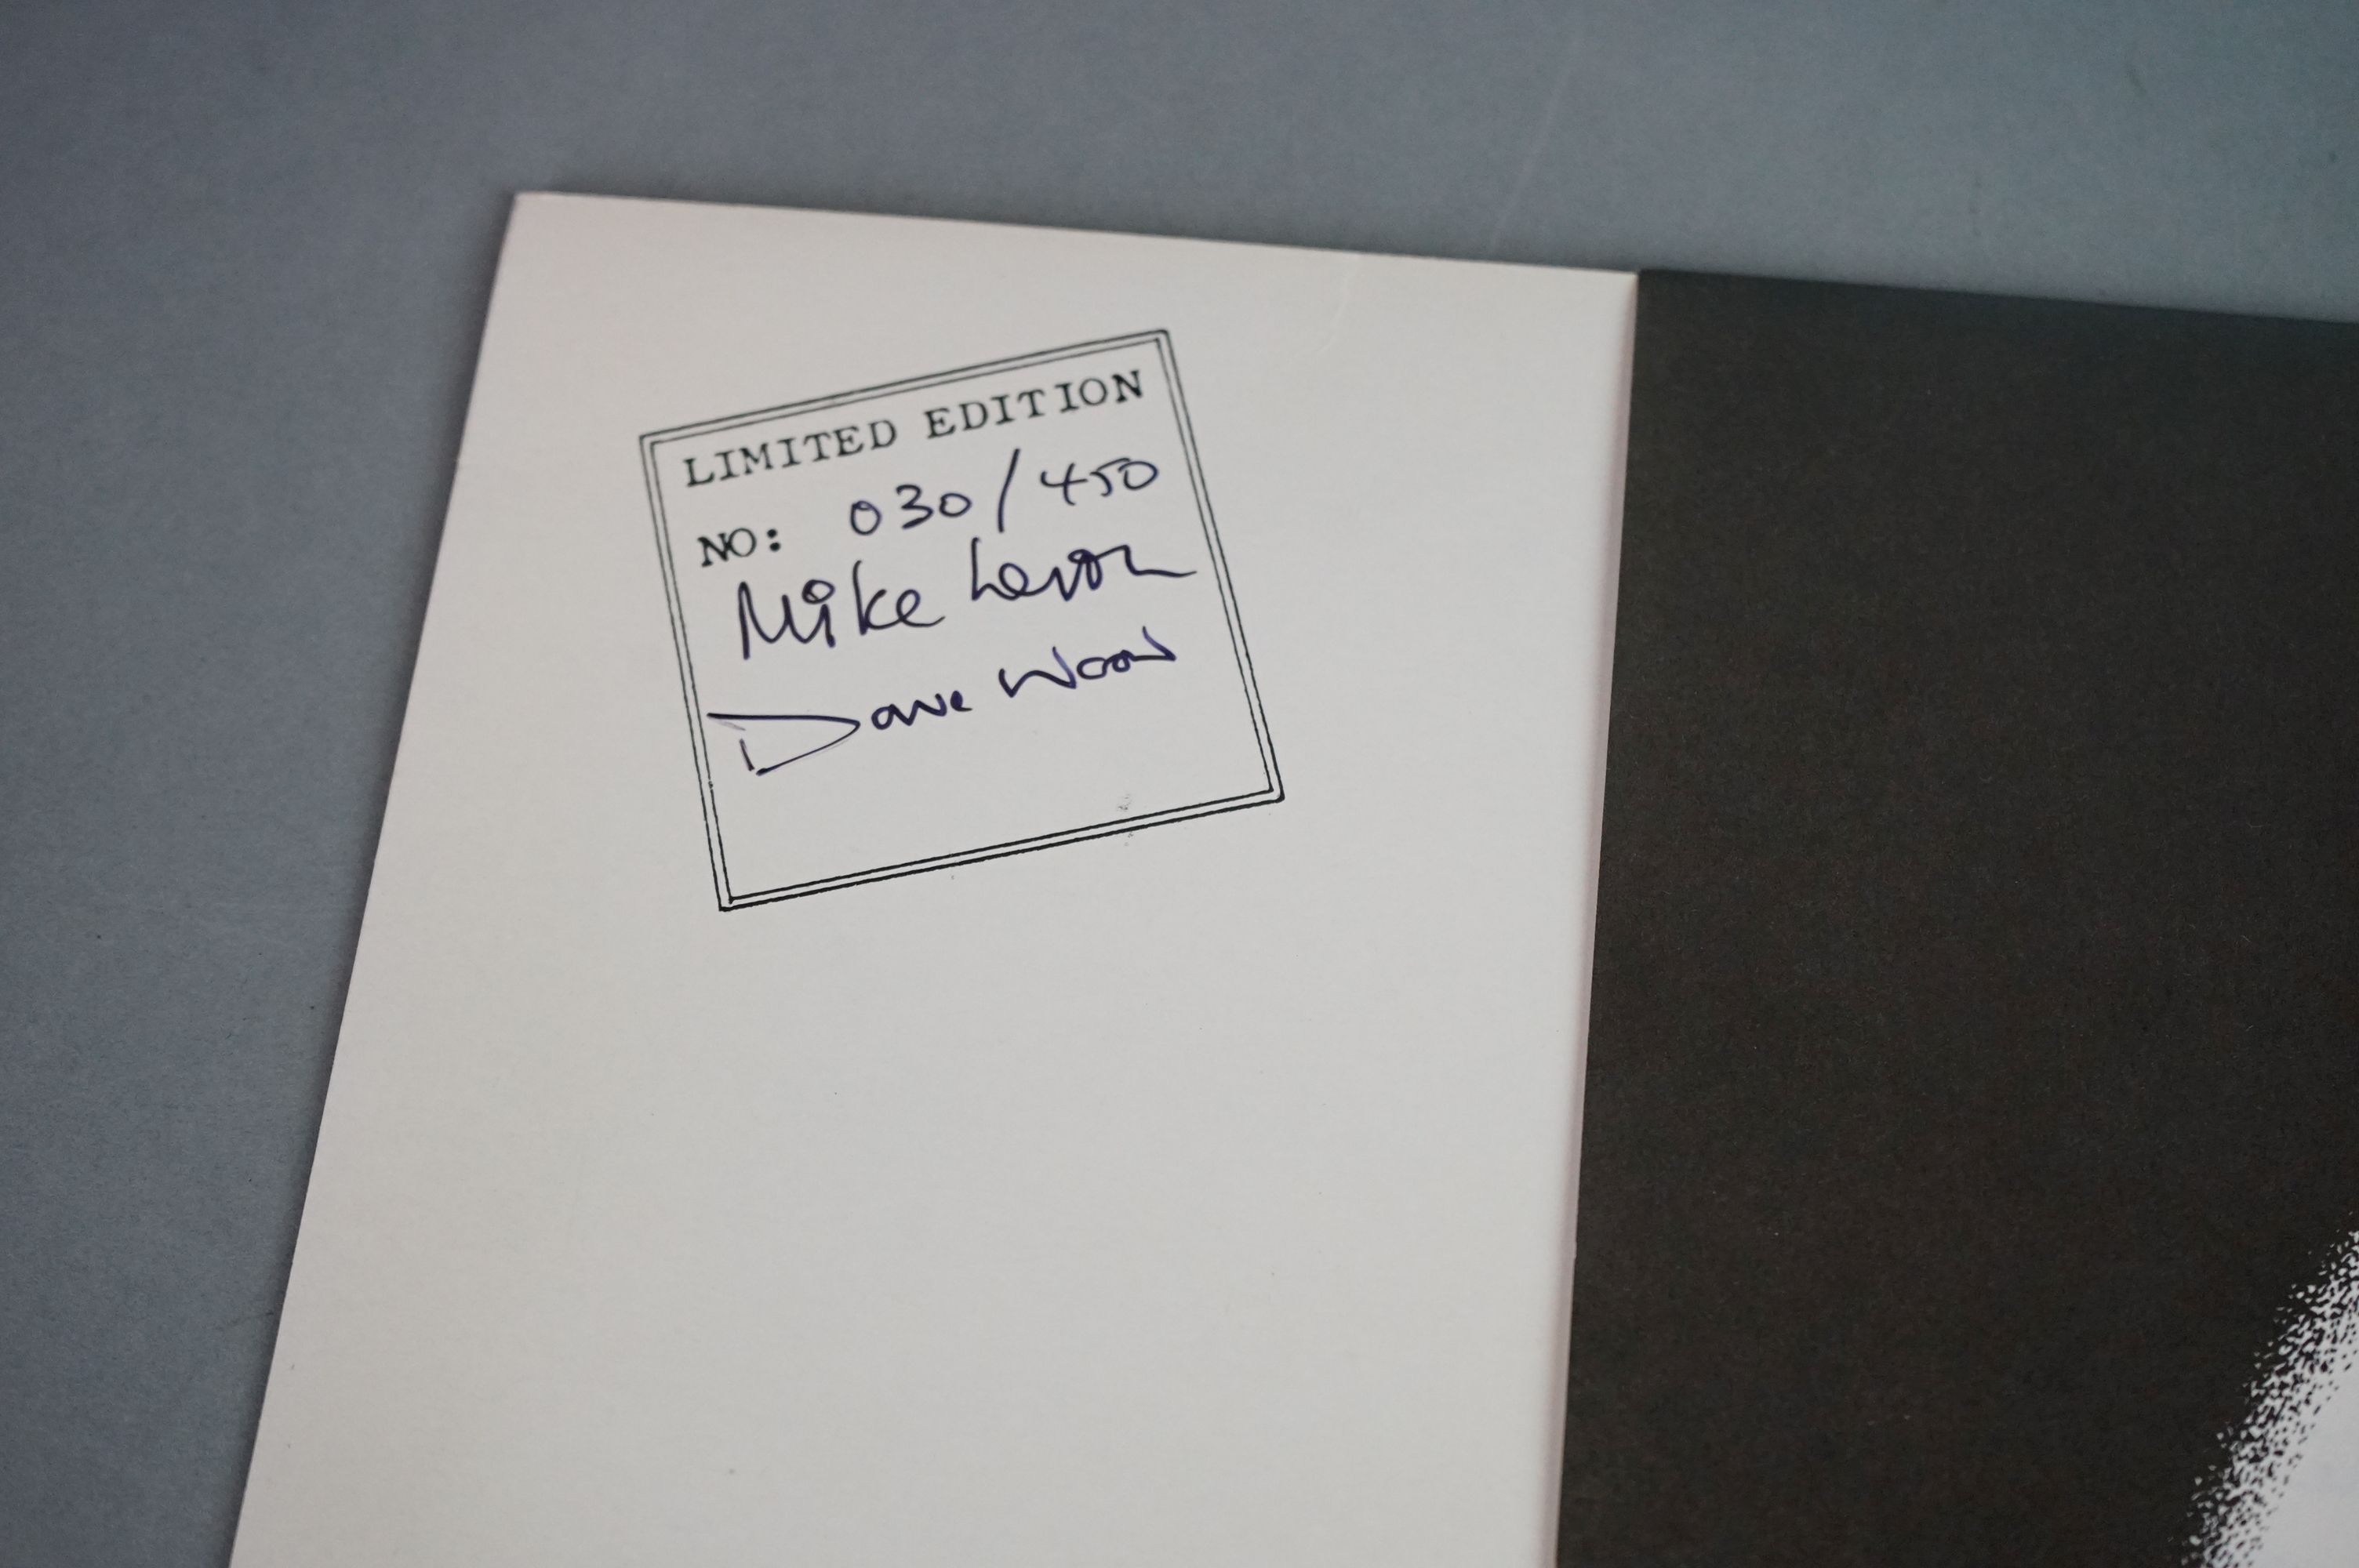 Vinyl - Lightyears Away / Thundermother ?? Astral Navigations (HG 114) numbered Ltd Edition - Image 6 of 12